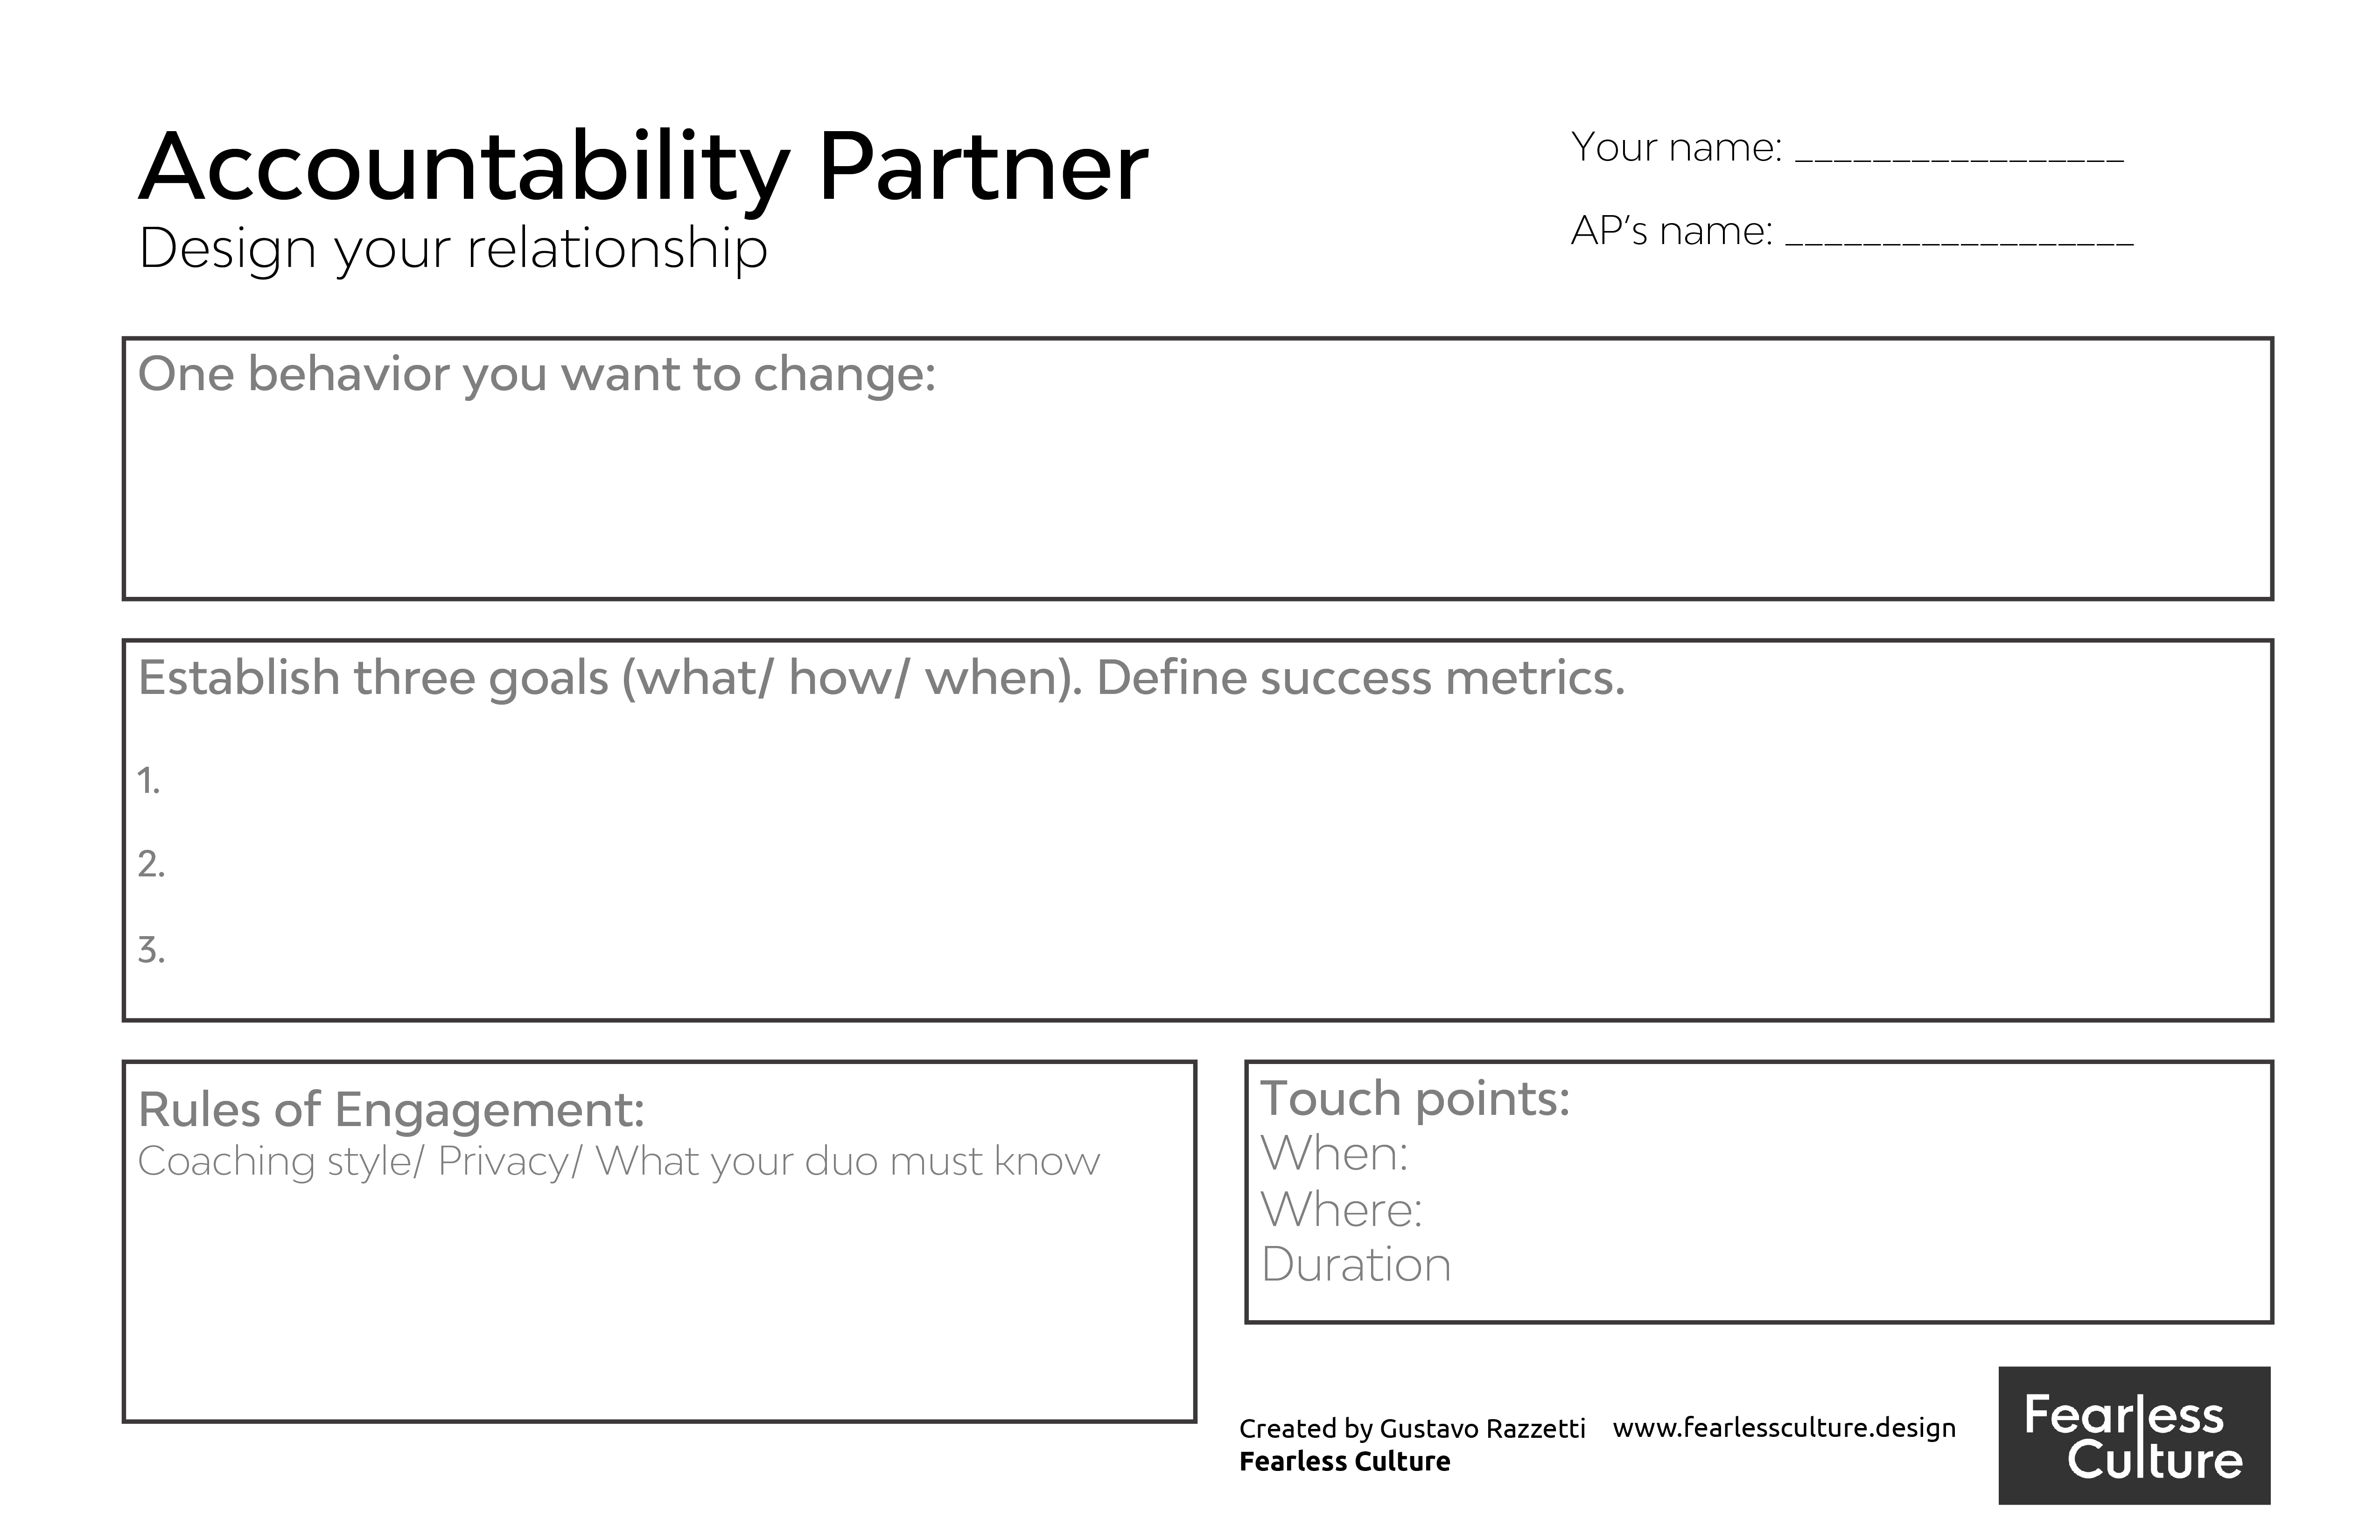 the accountability partner canvas is a tool to help success partnerships between team members to increase productivity and accountability